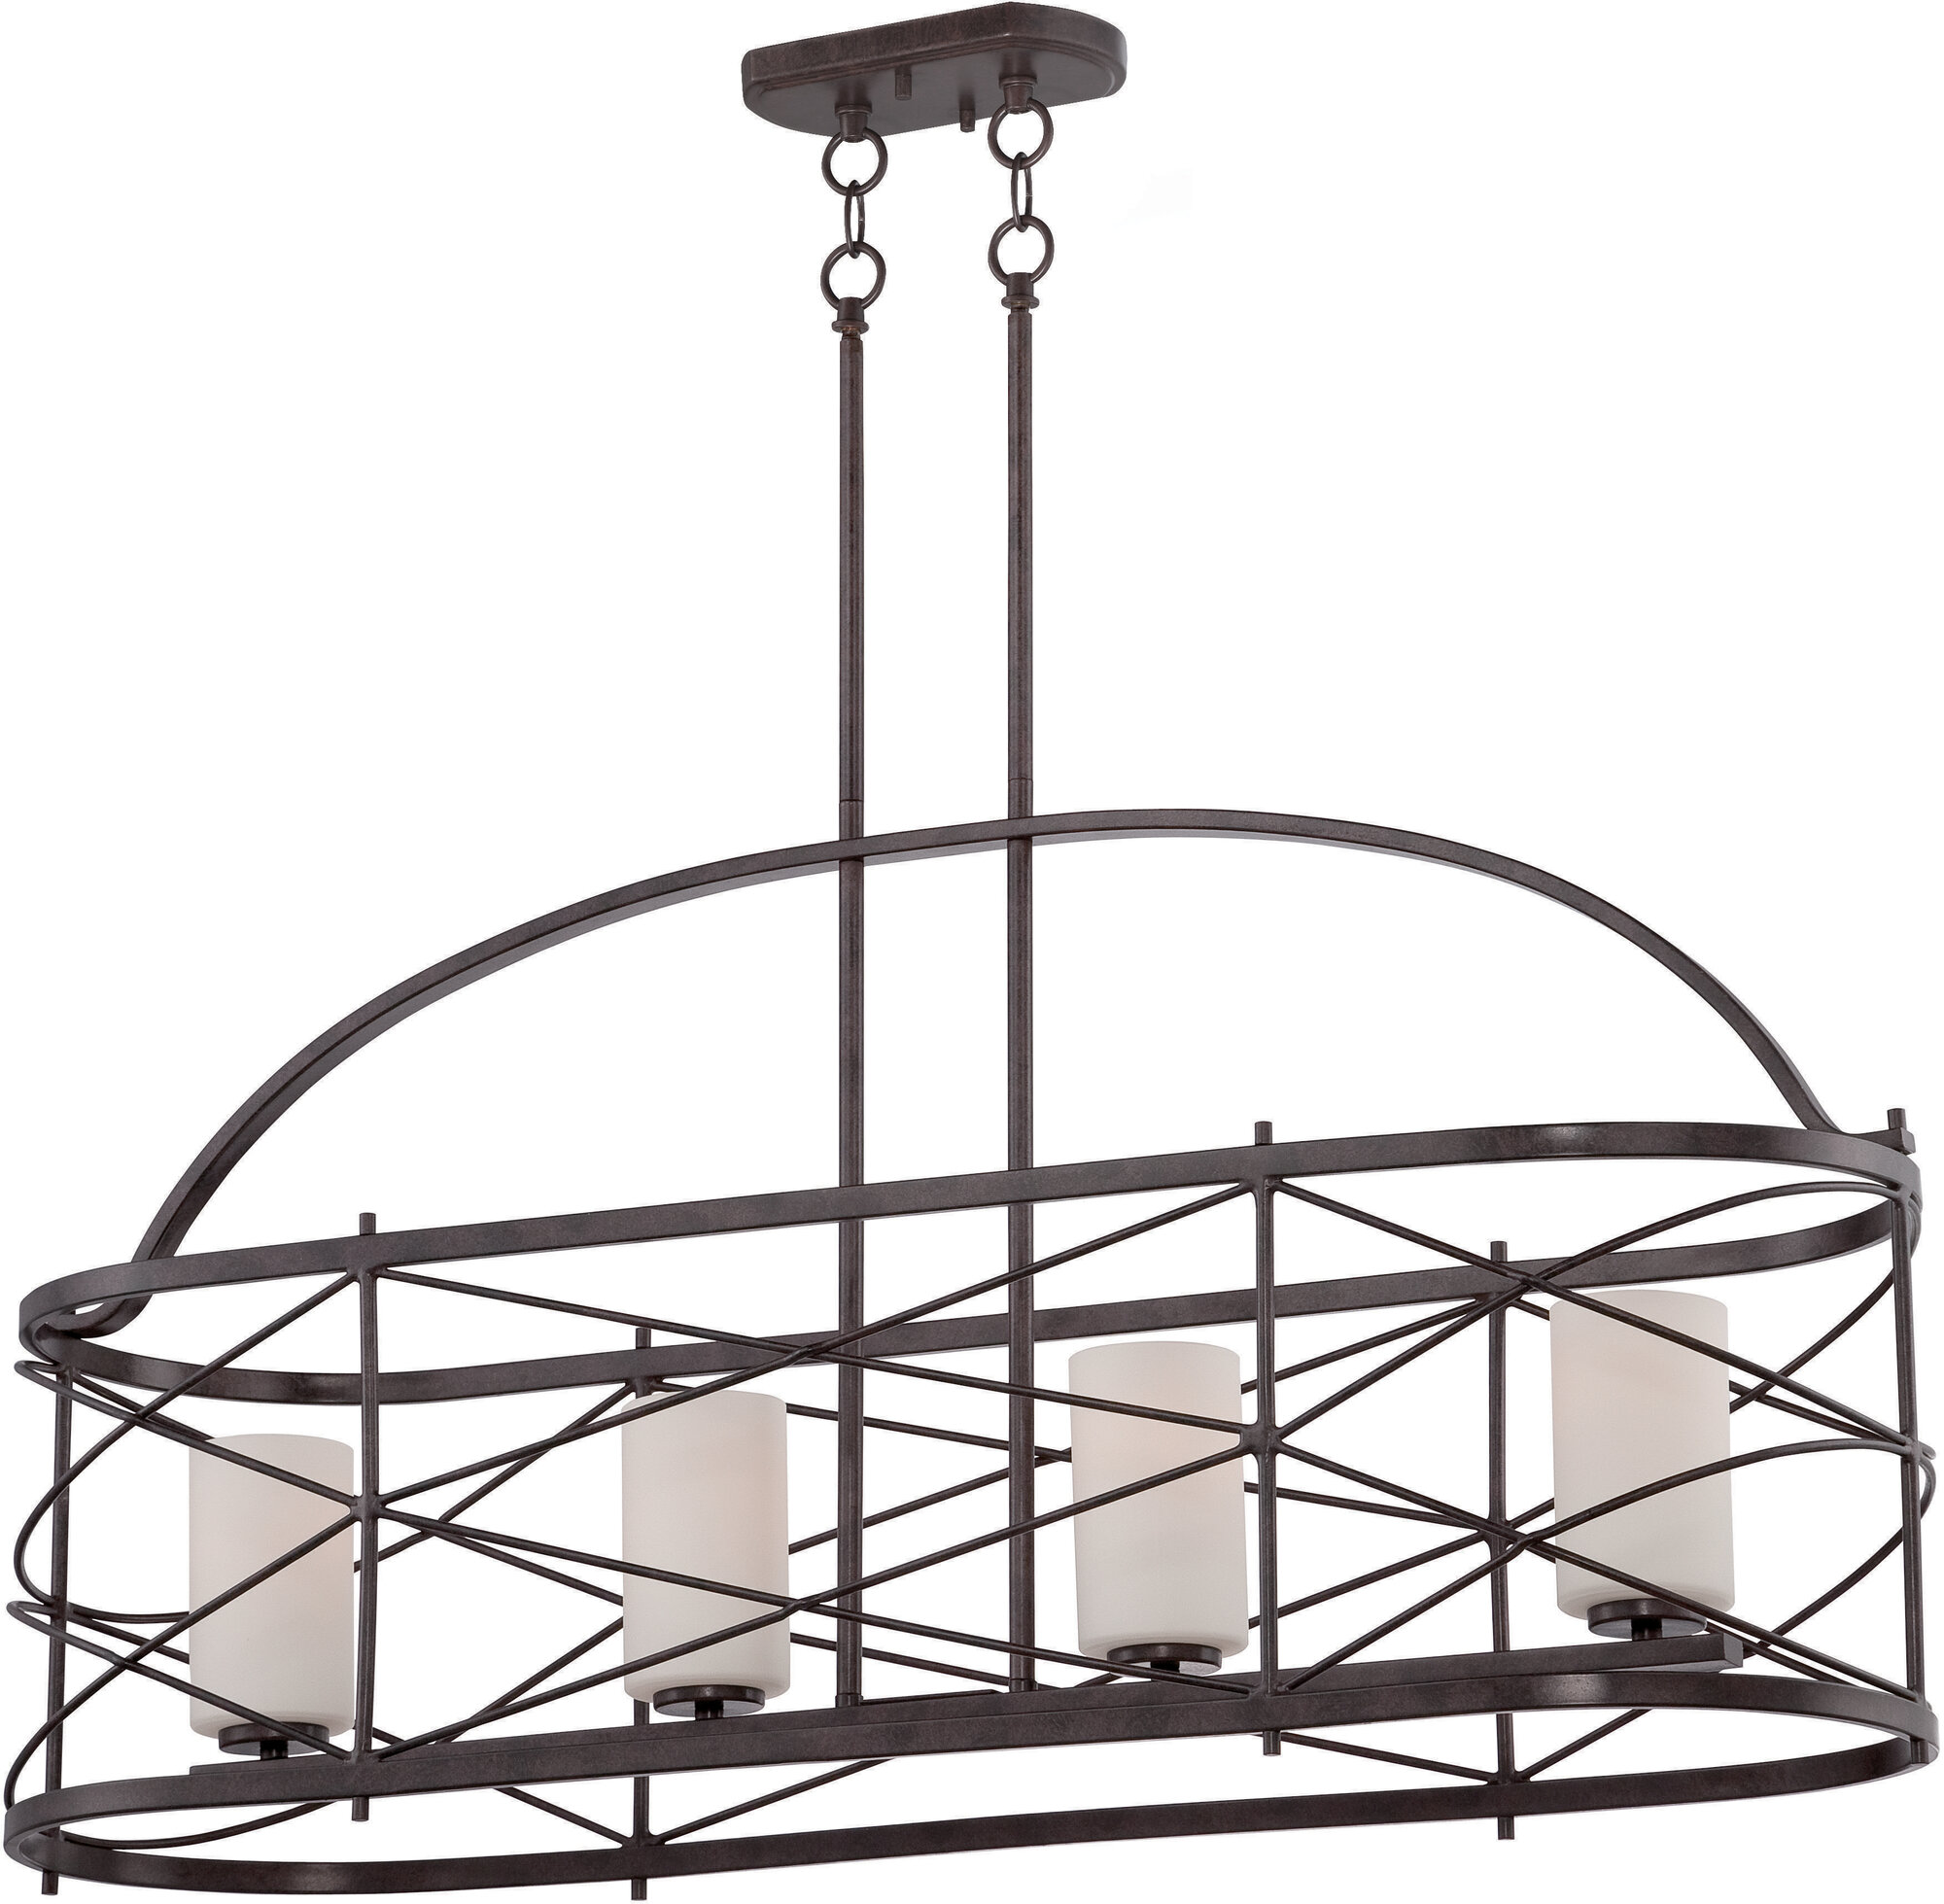 Kitchen Island With Darlana Chandelier: Nuvo Lighting Ginger 4 Light Kitchen Island Pendant